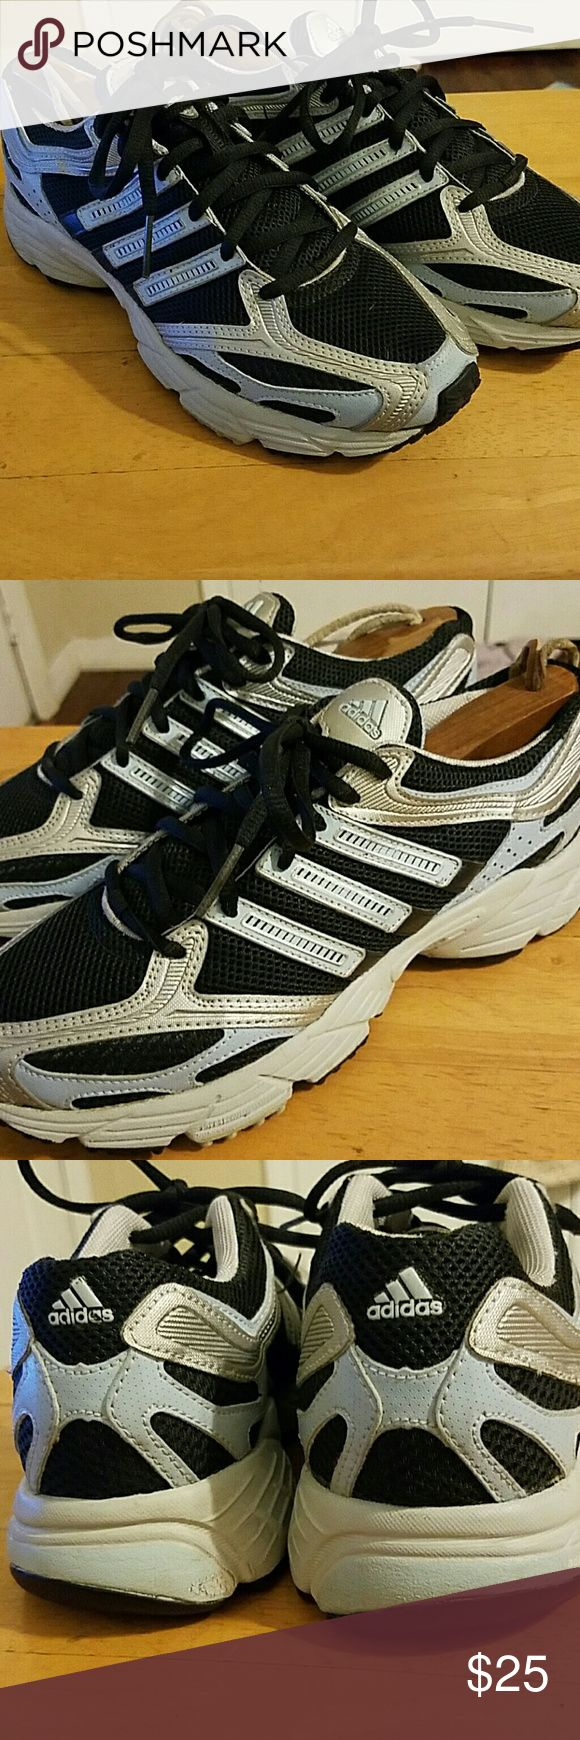 Adidas Ladies running shoes Ladies Adidas runners size 6.5 in excellent condition very little use. Ready for a new set of feet and awesome adventures. Actual colors are black light blue/grey and silver trim. Adidas Shoes Sneakers